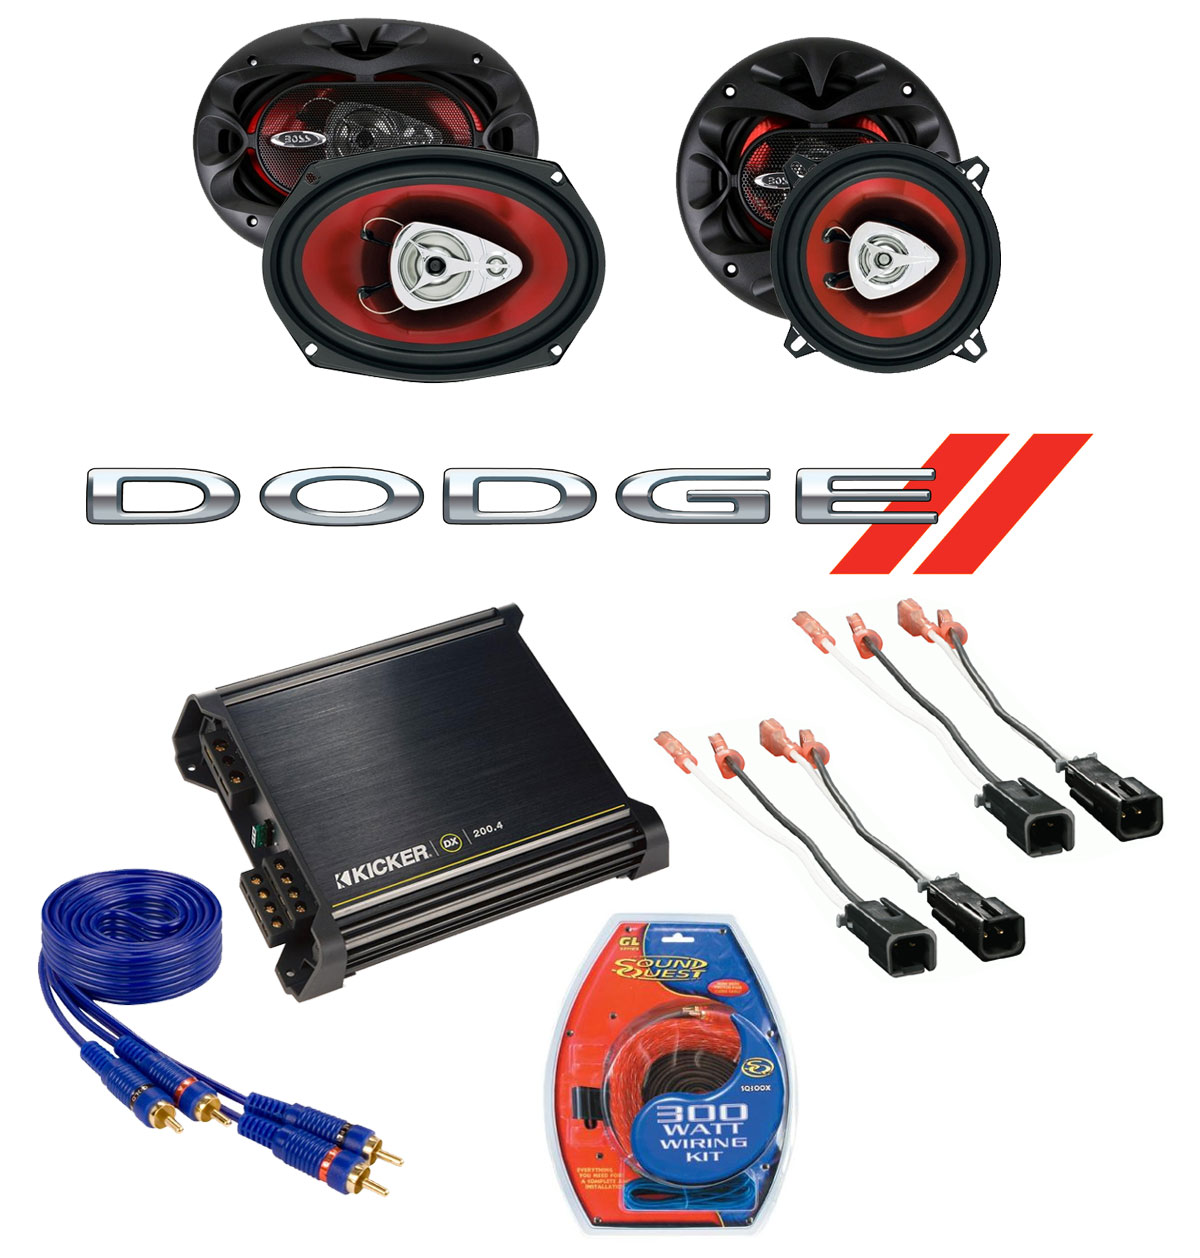 Dodge Caravan 1996-2000 Boss CH5520 & CH6930 Coaxial Factory Upgrade Replacement Speakers